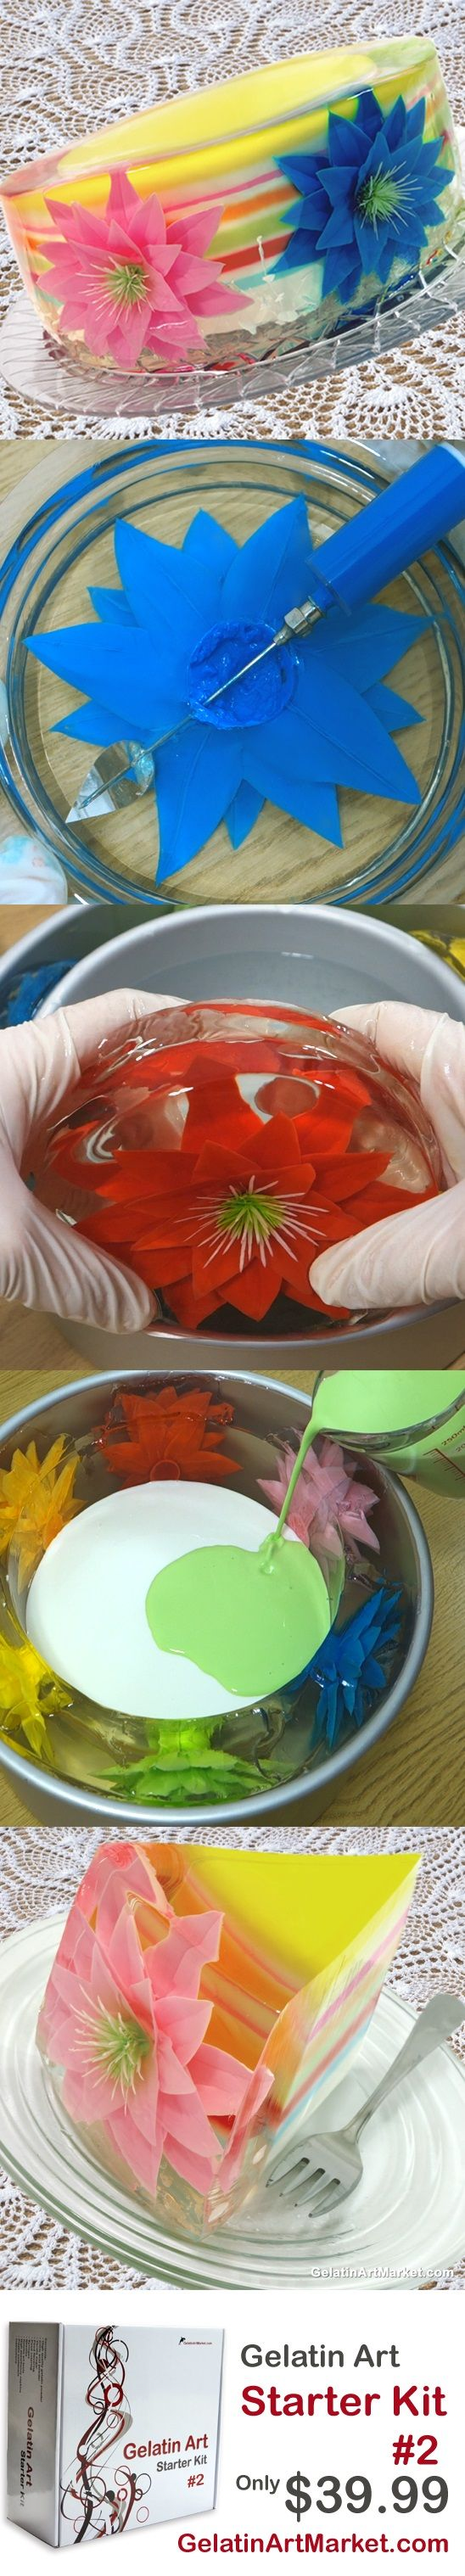 Learn how to draw flowers in fruit-flavored jelly. Gelatin Art Birthday Cake, Delicious and gluten free! GelatinArtMarket.com